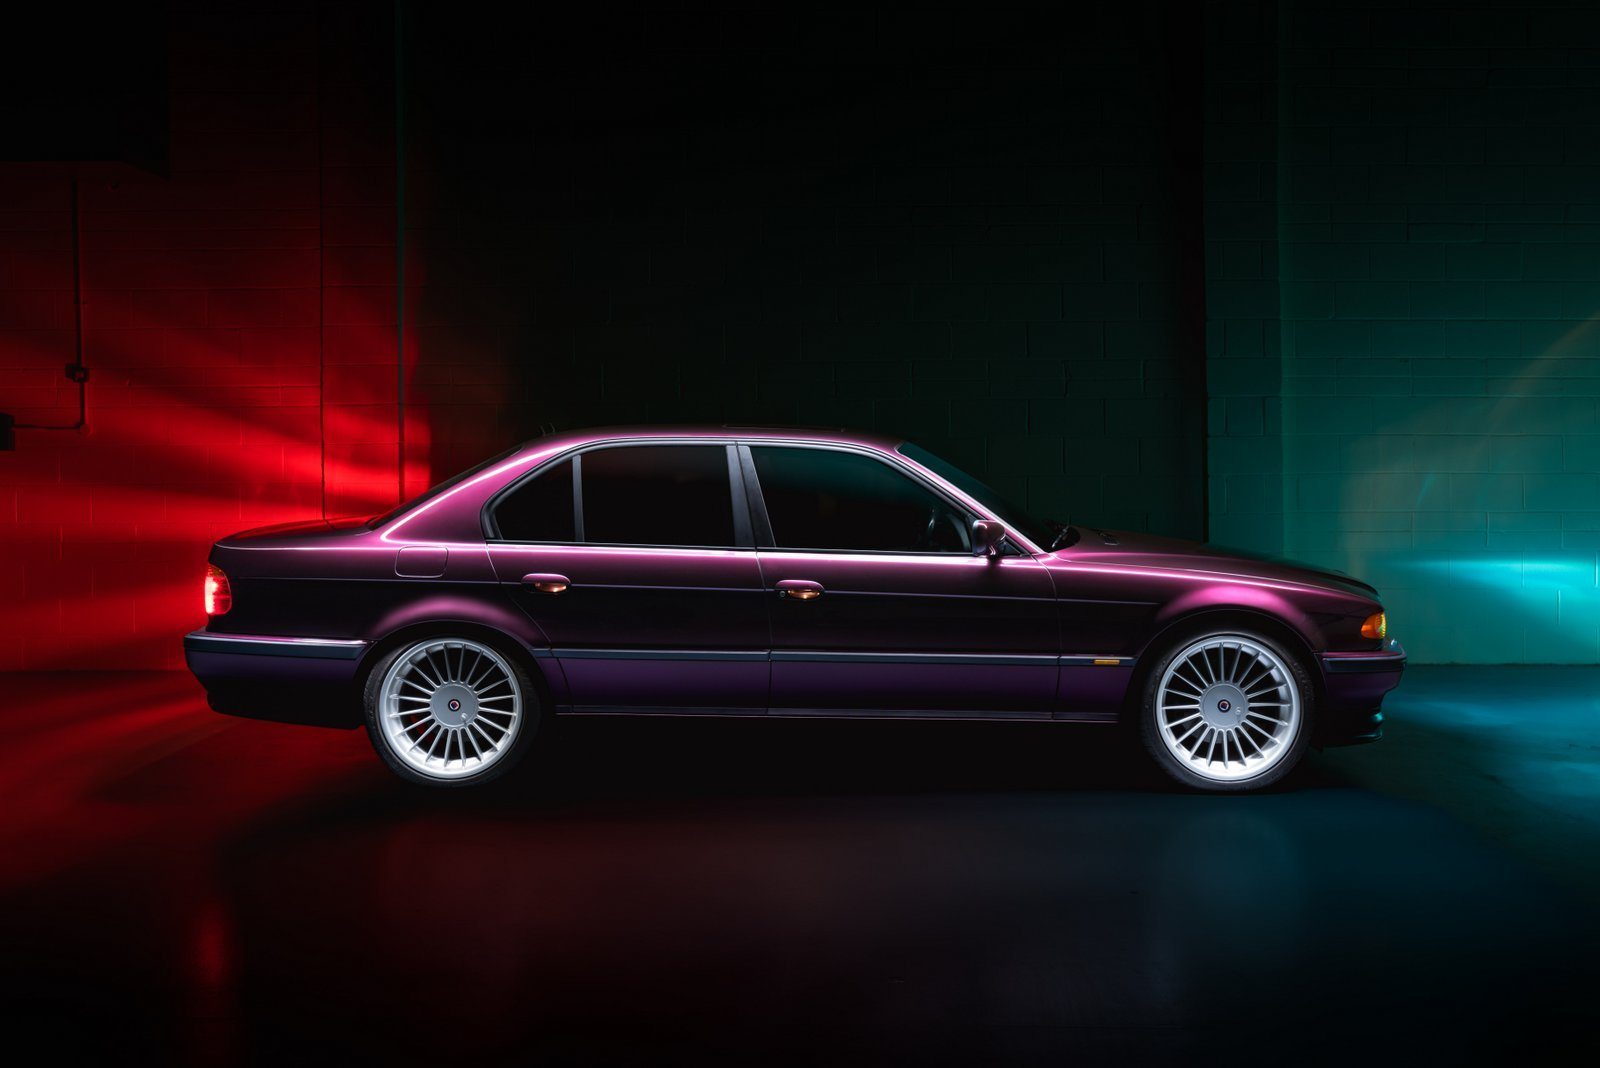 1999 BMW Alpina B12 6.0 e38 RHD 1 of 7 For Sale (picture 1 of 6)